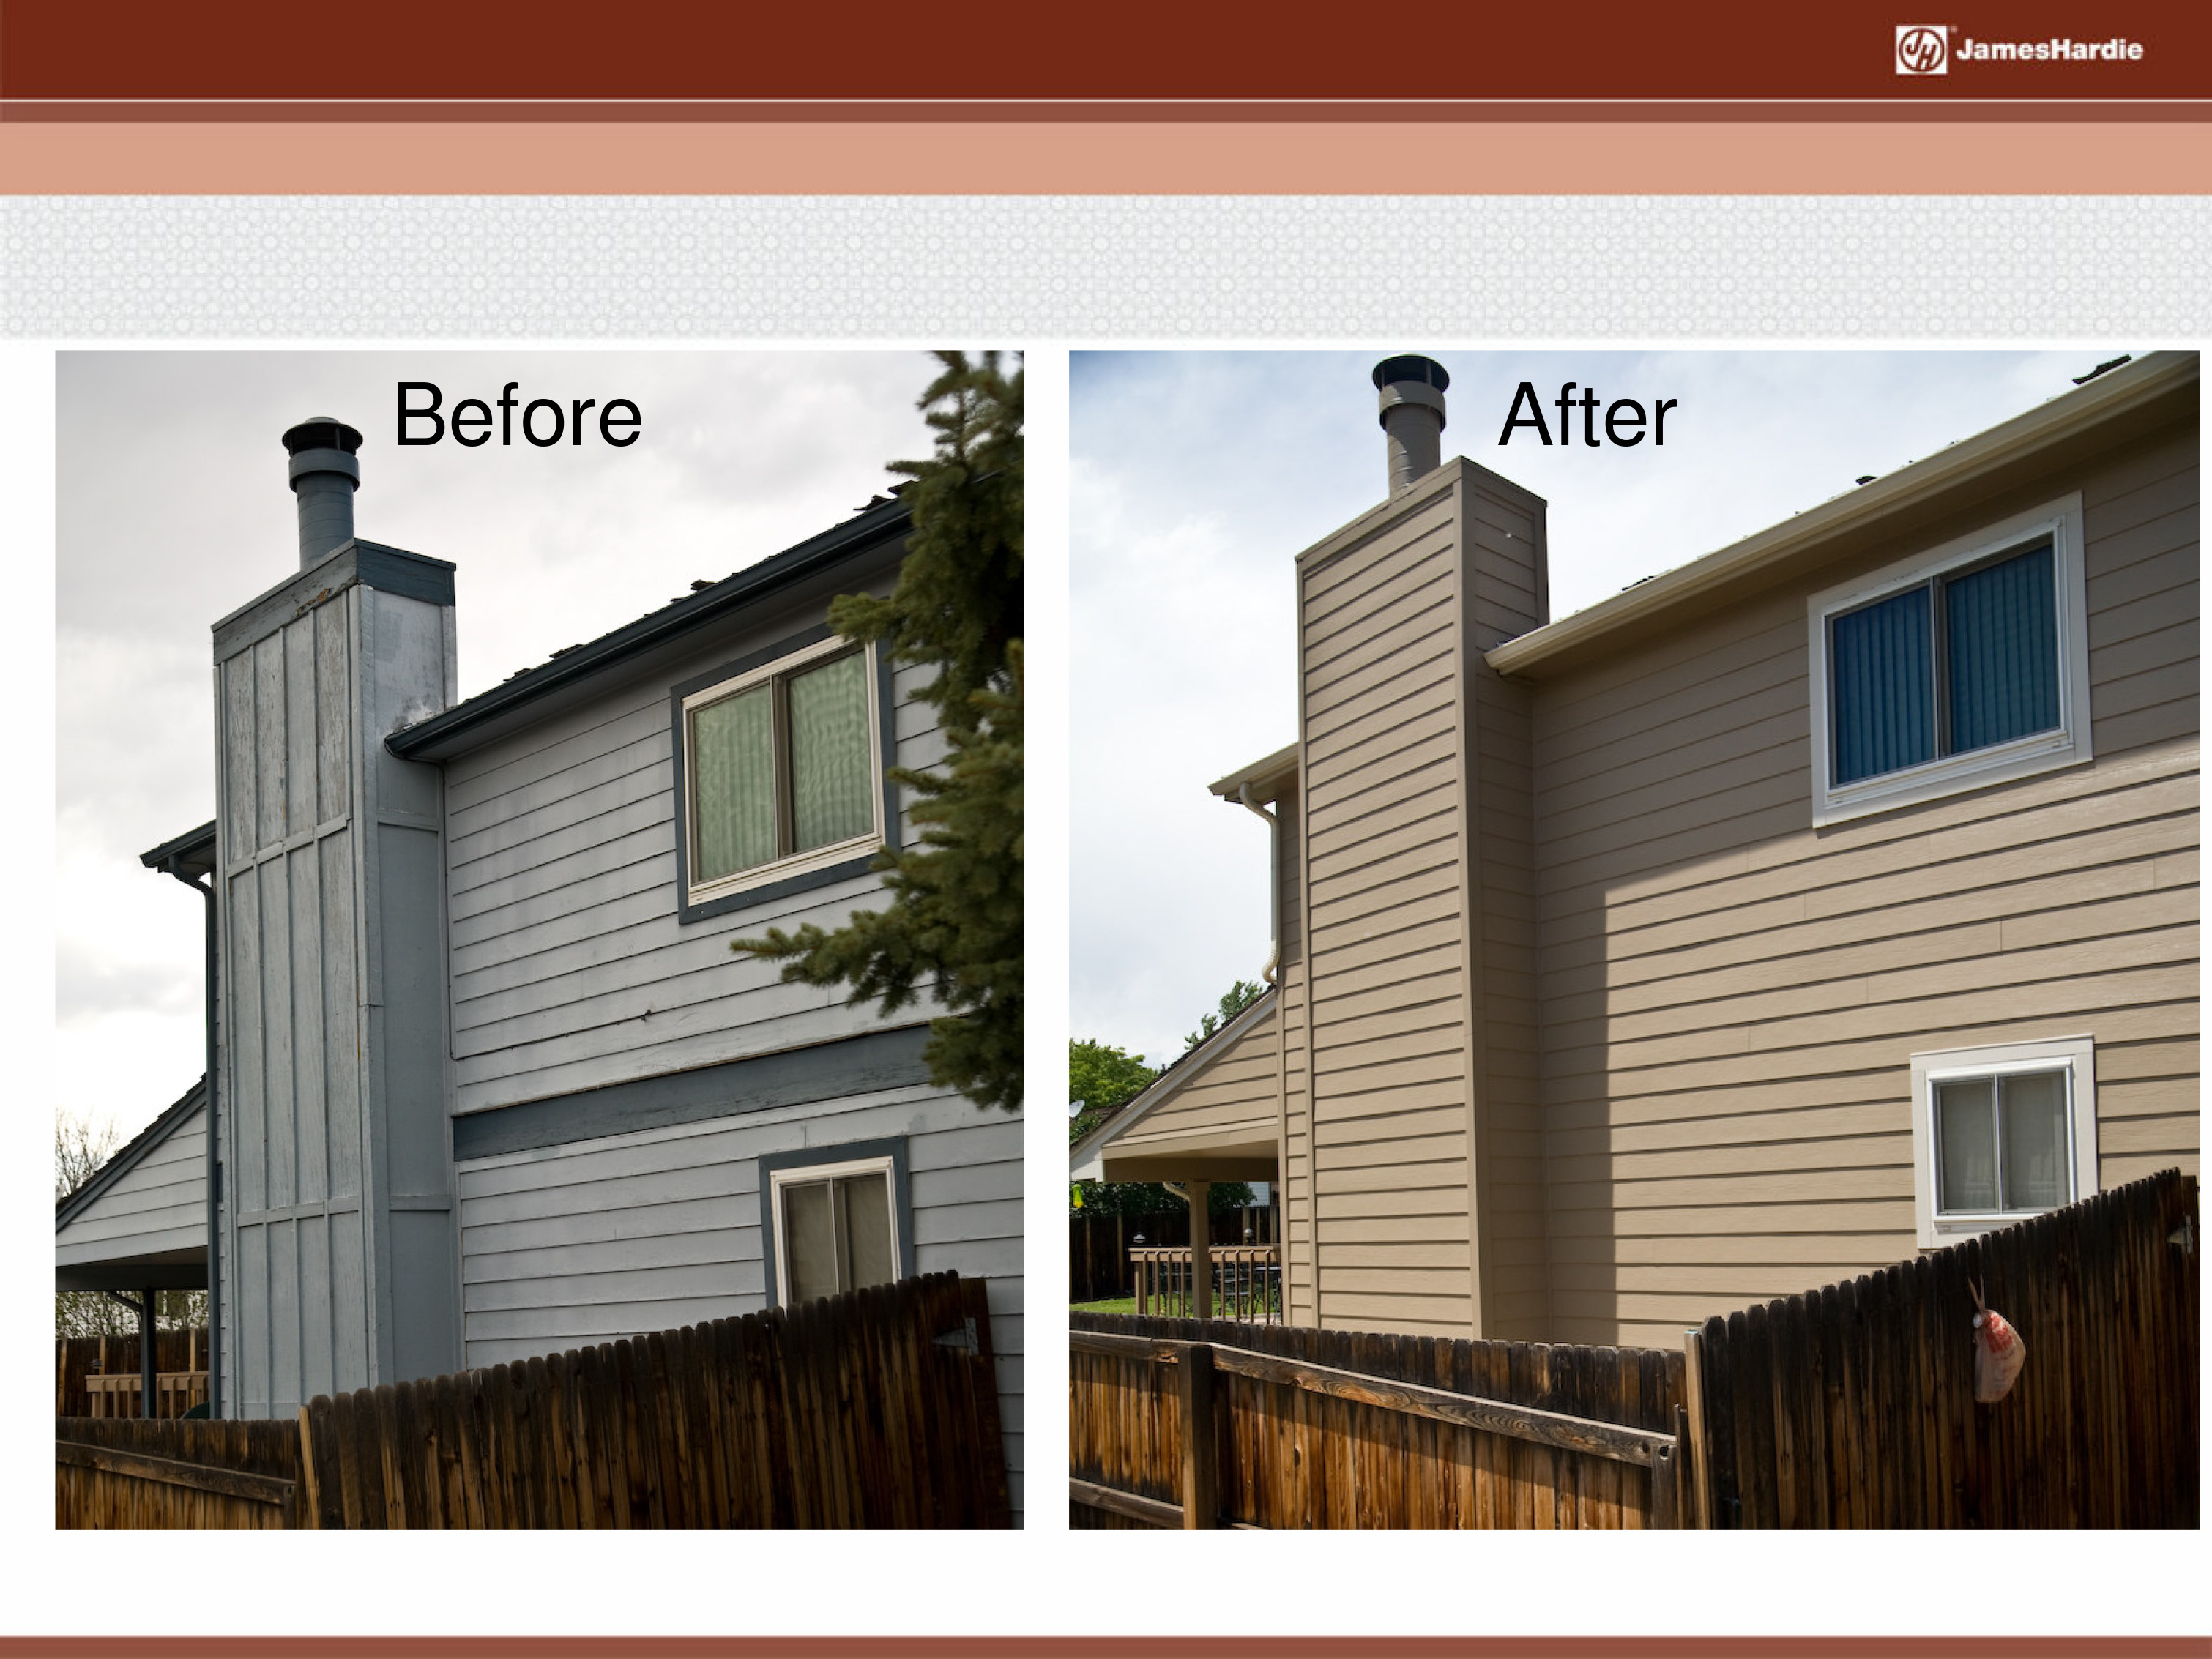 Before and After James Hardie Siding 9